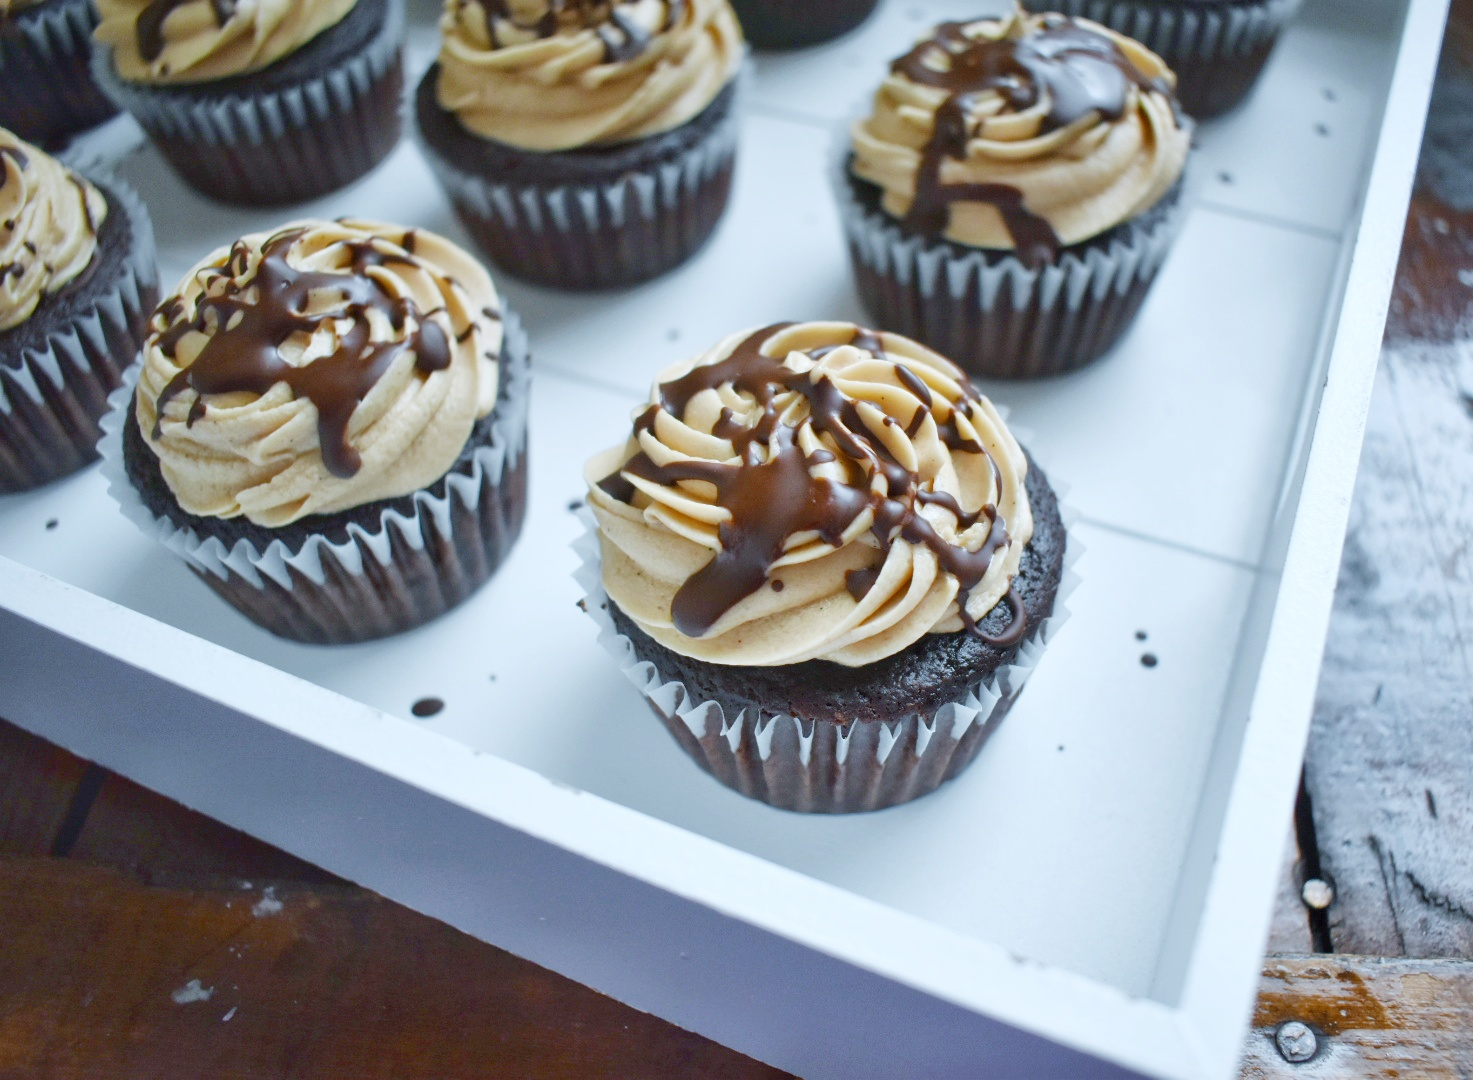 Vegan Chocolate Stout Cupcakes with Irish Whiskey Frosting - The Bitchy Baker